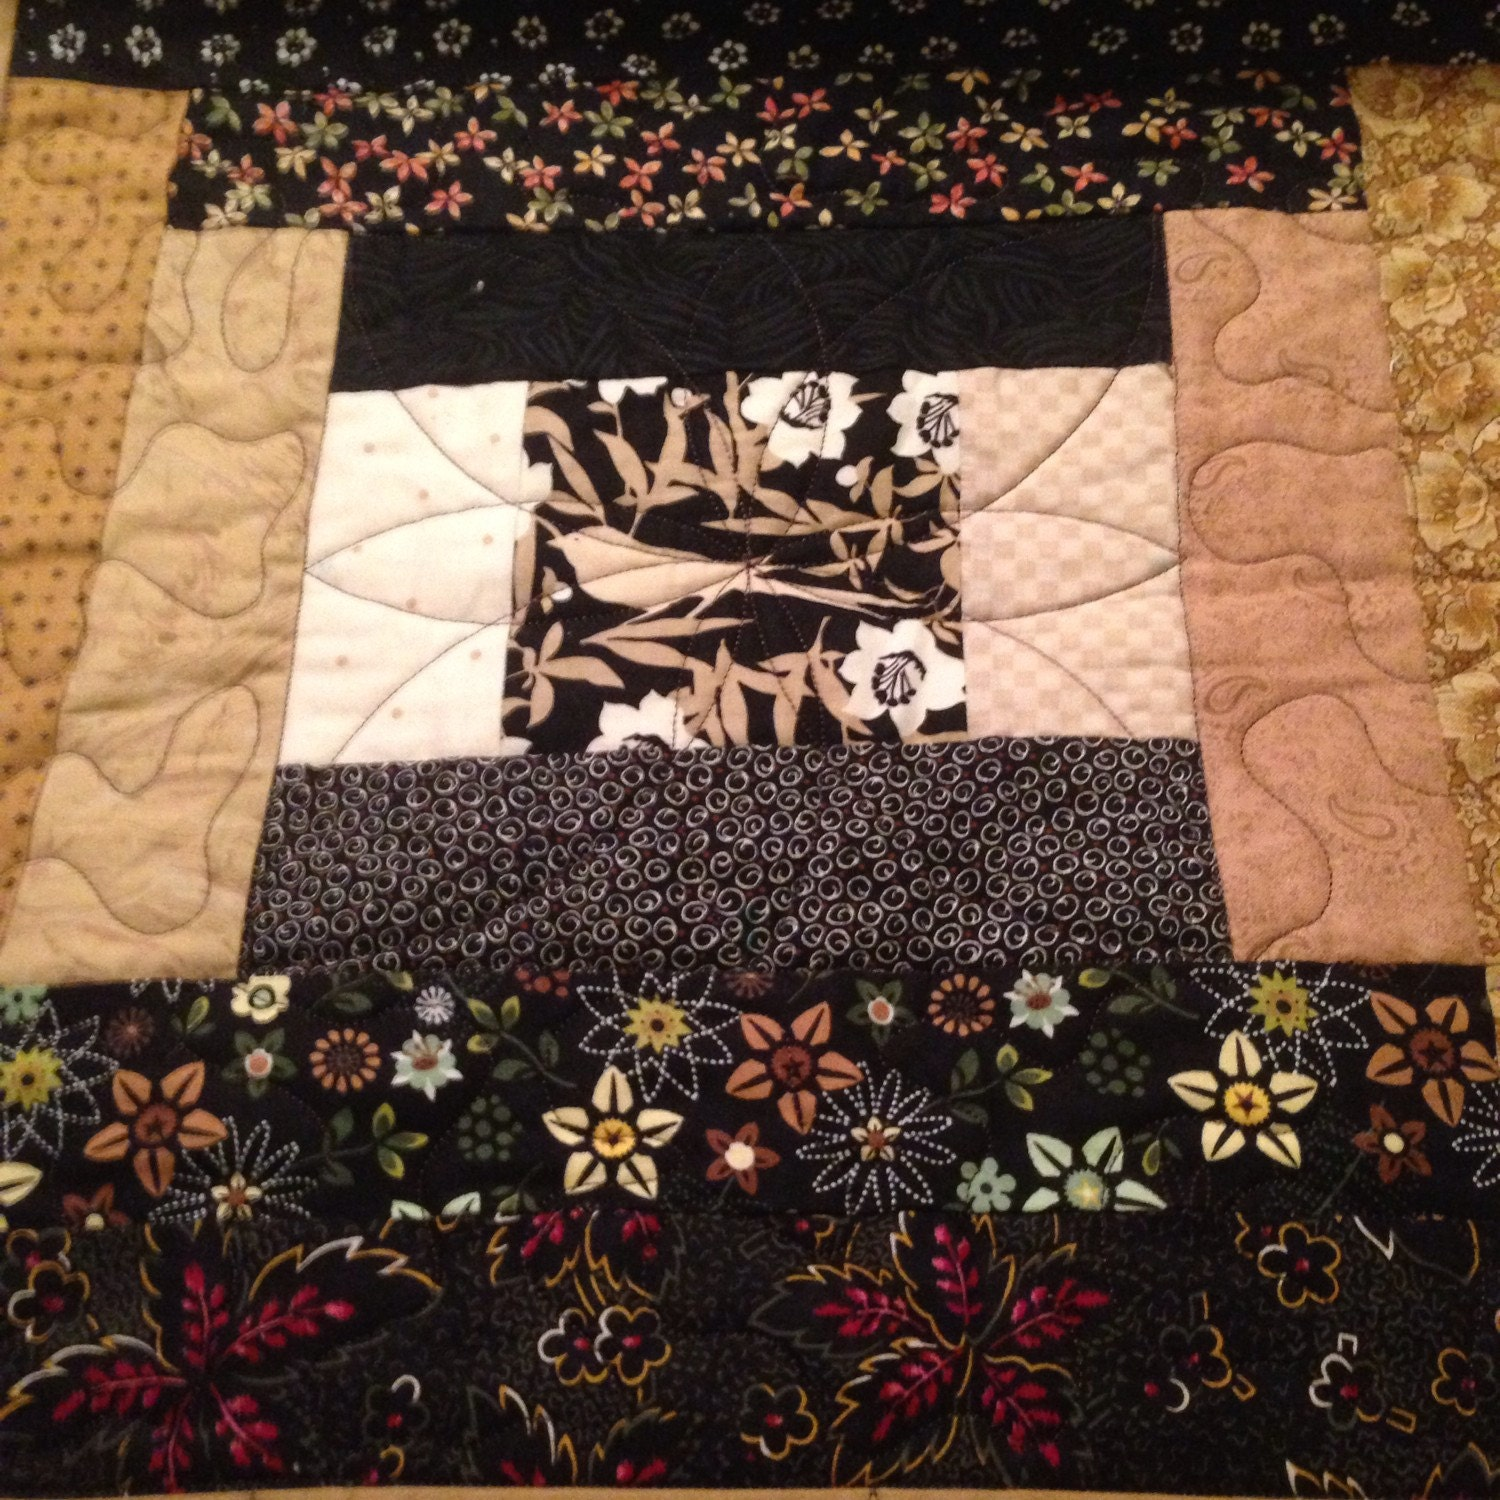 quilted king sized bed runner by anacapatrading on etsy. Black Bedroom Furniture Sets. Home Design Ideas